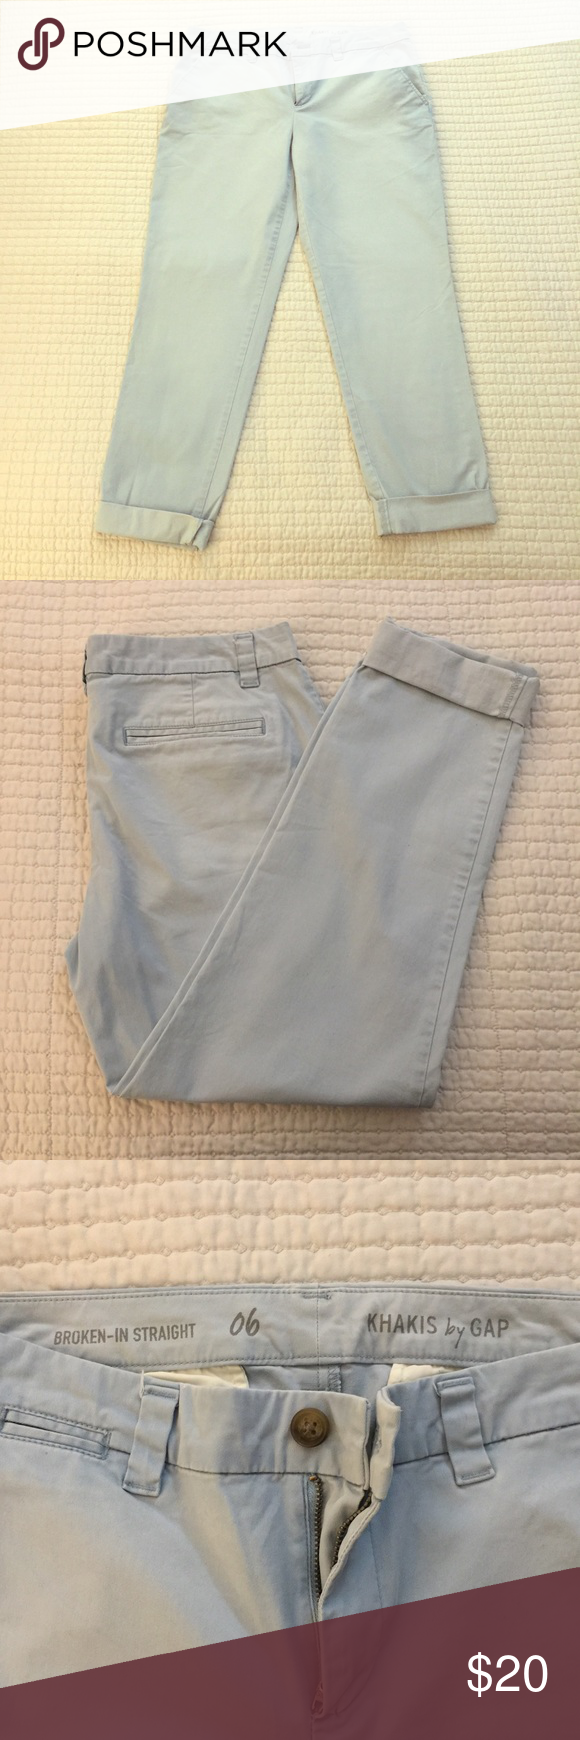 Gap Powder Blue Khakis NWOT. Bought new and never worn. No flaws and from a smoke-free home. I'd be happy to answer any questions, and feel free to make an offer. Thanks! GAP Pants Ankle & Cropped